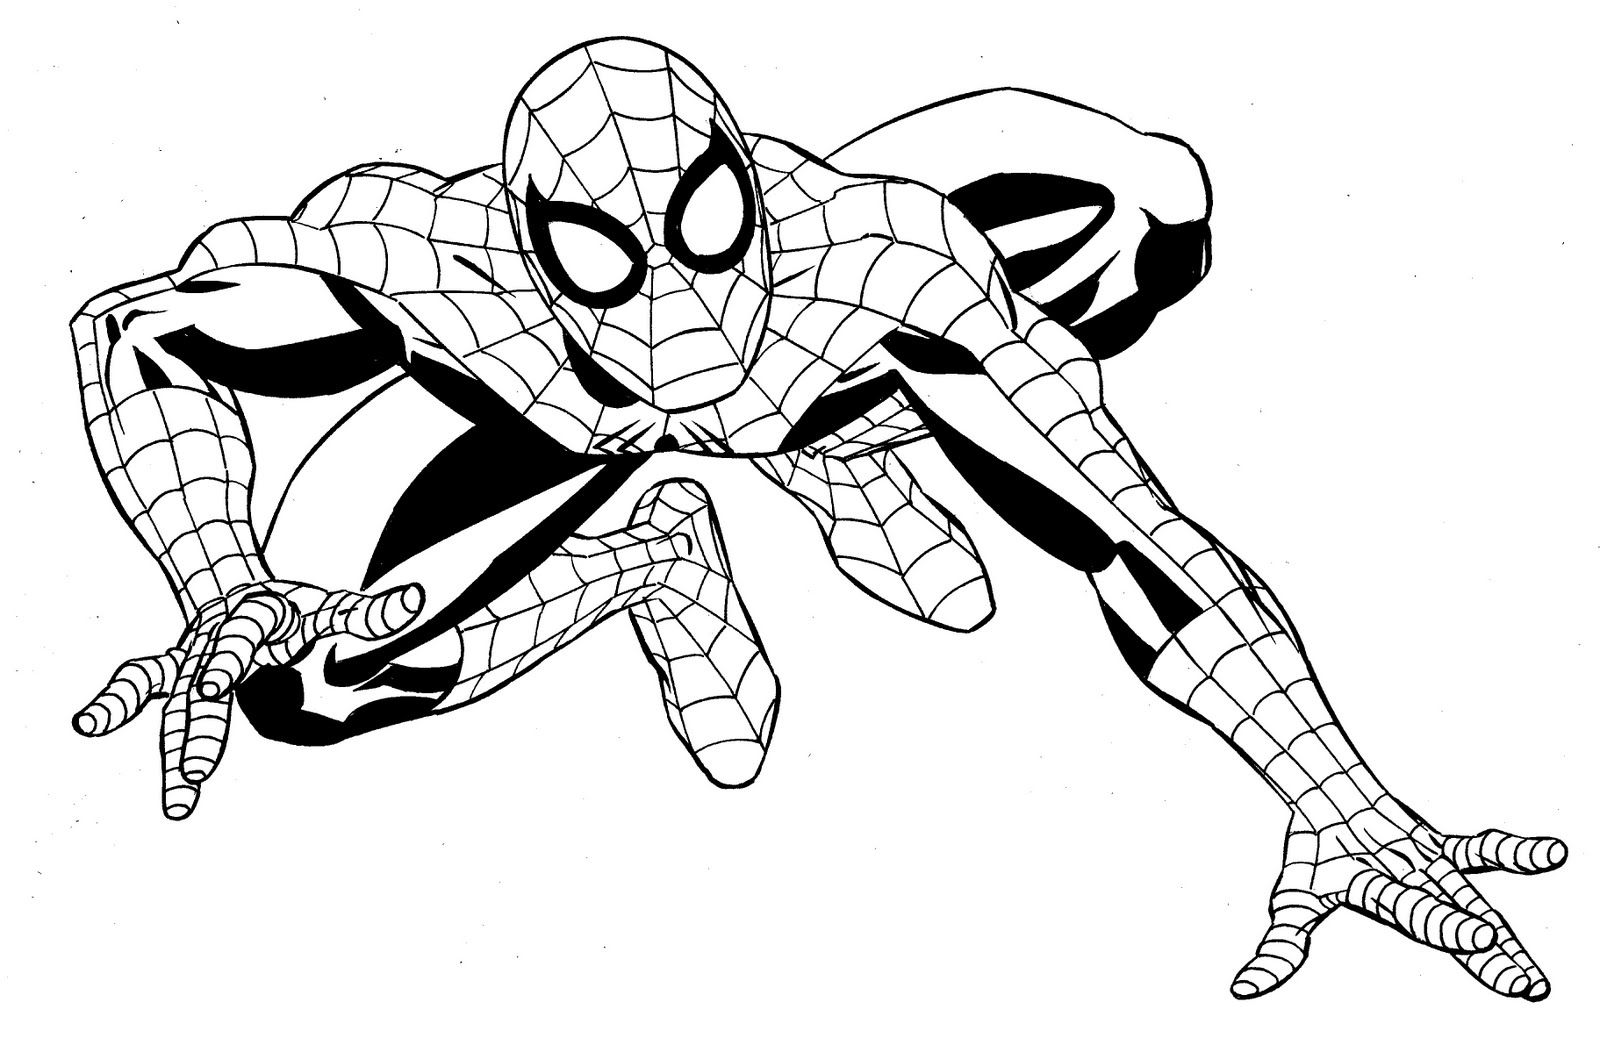 superheroes coloring pages | Marvel superheroes coloring pages ...